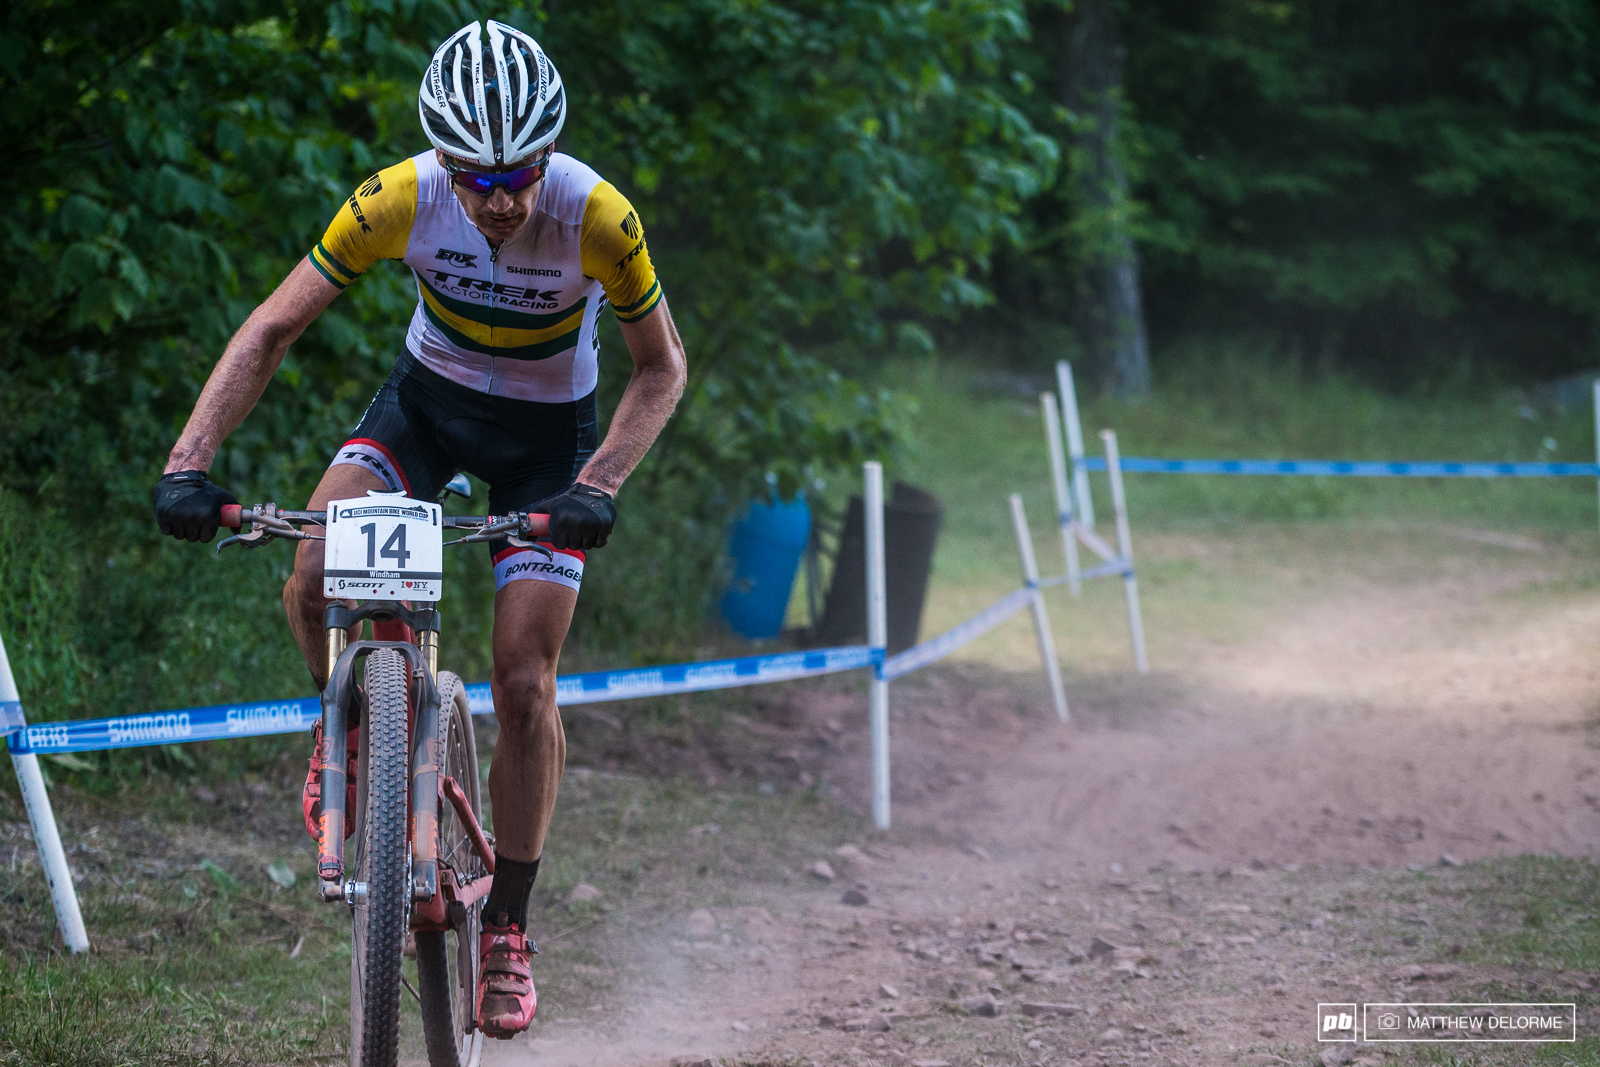 The climbs on this course suited Dan The Diesel McConnell. He rode to fifth place his best result this season.